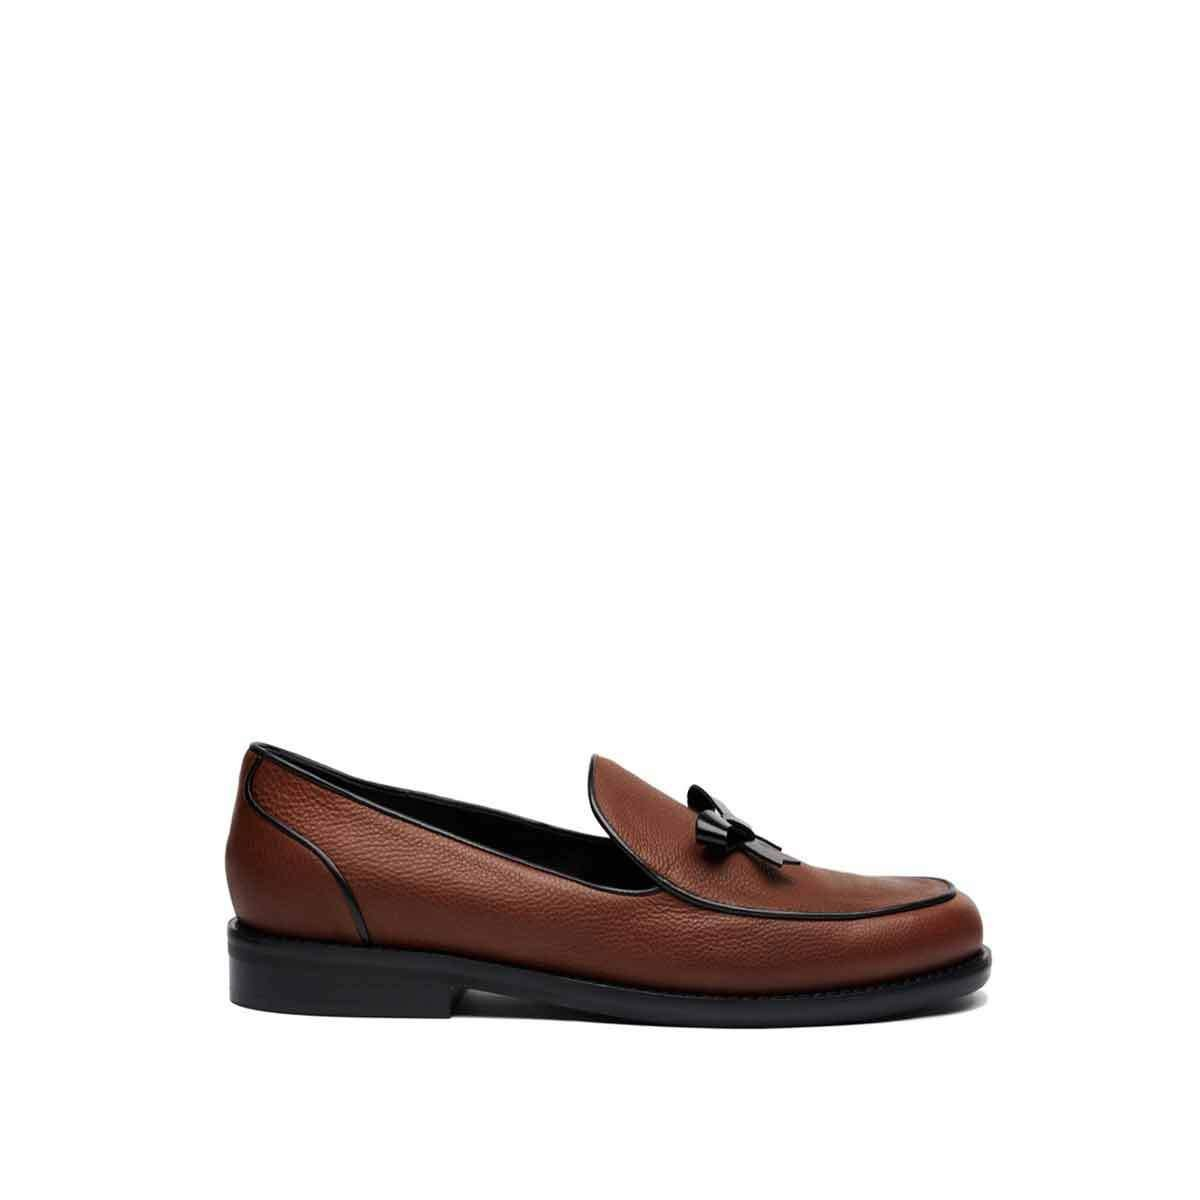 Keaton Loafer - Chocolate Brown